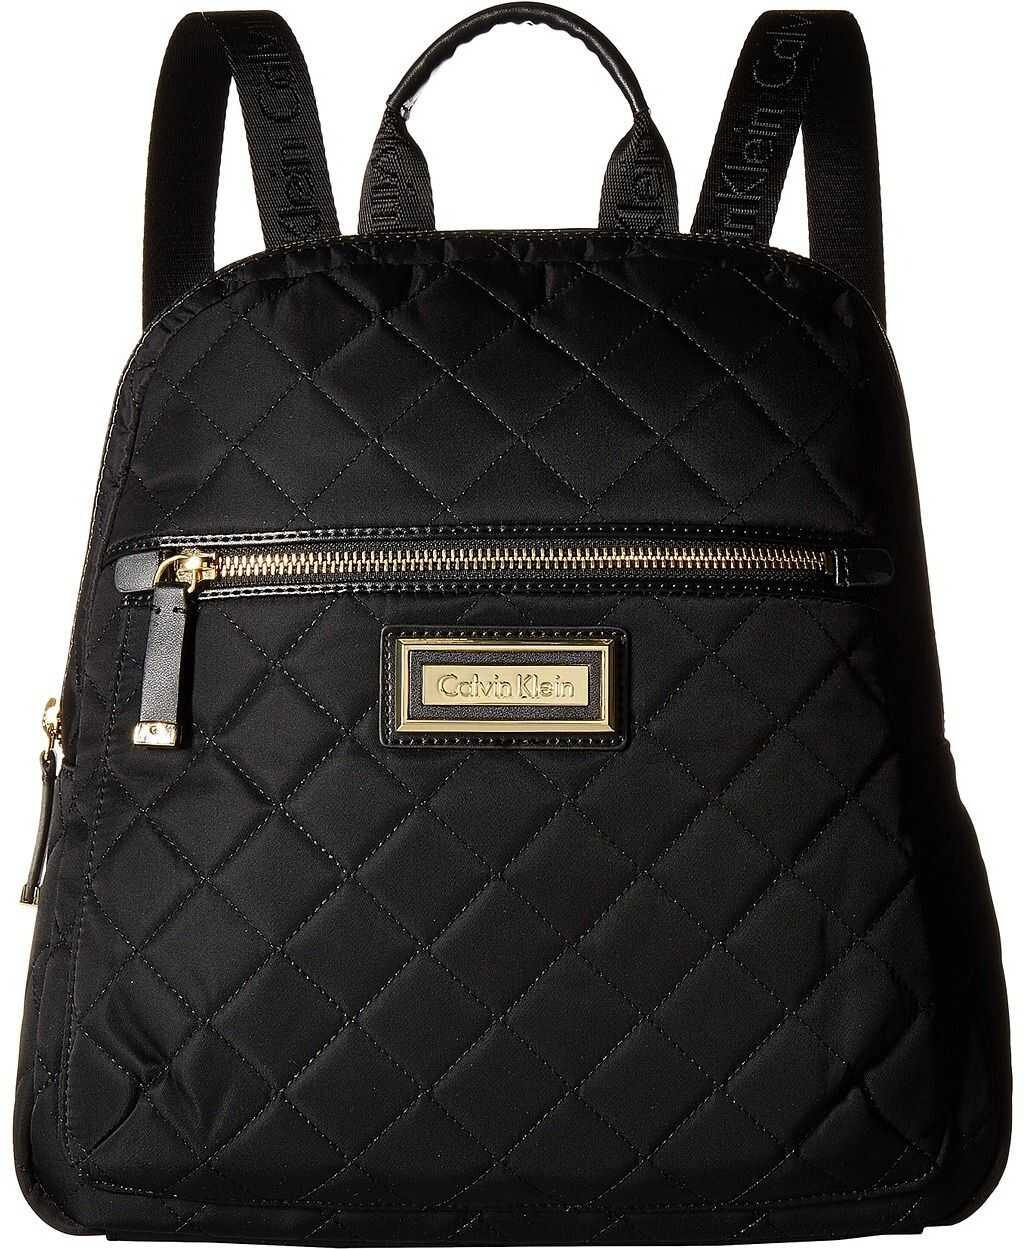 Calvin Klein Quilted Nylon Key Item Backpack Black Quilt